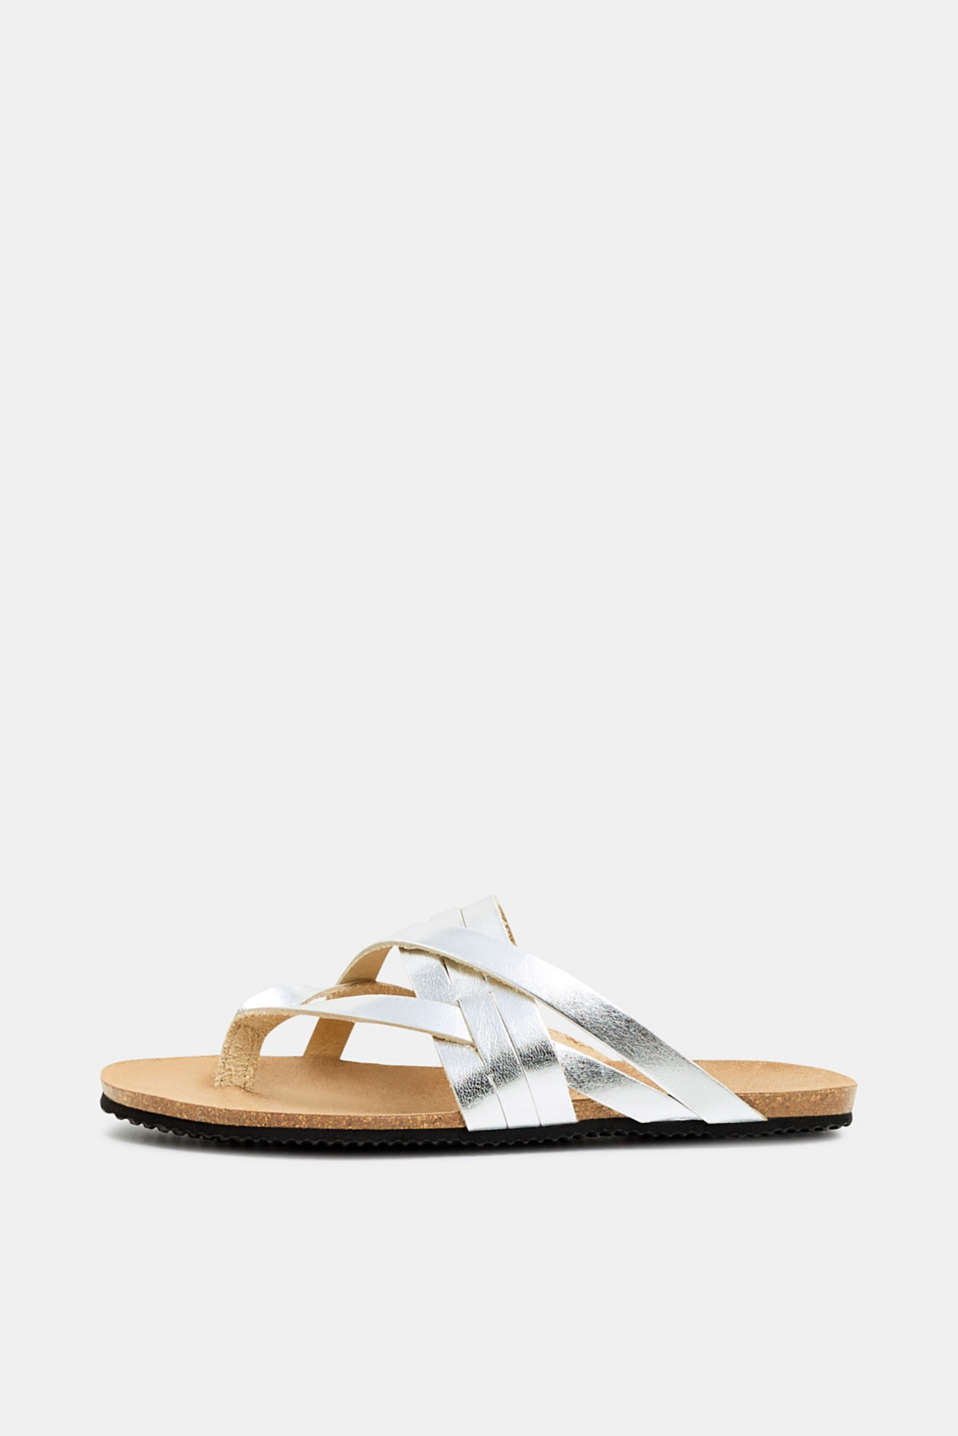 Esprit - Toe-post with crossed-over strap, 100% leather